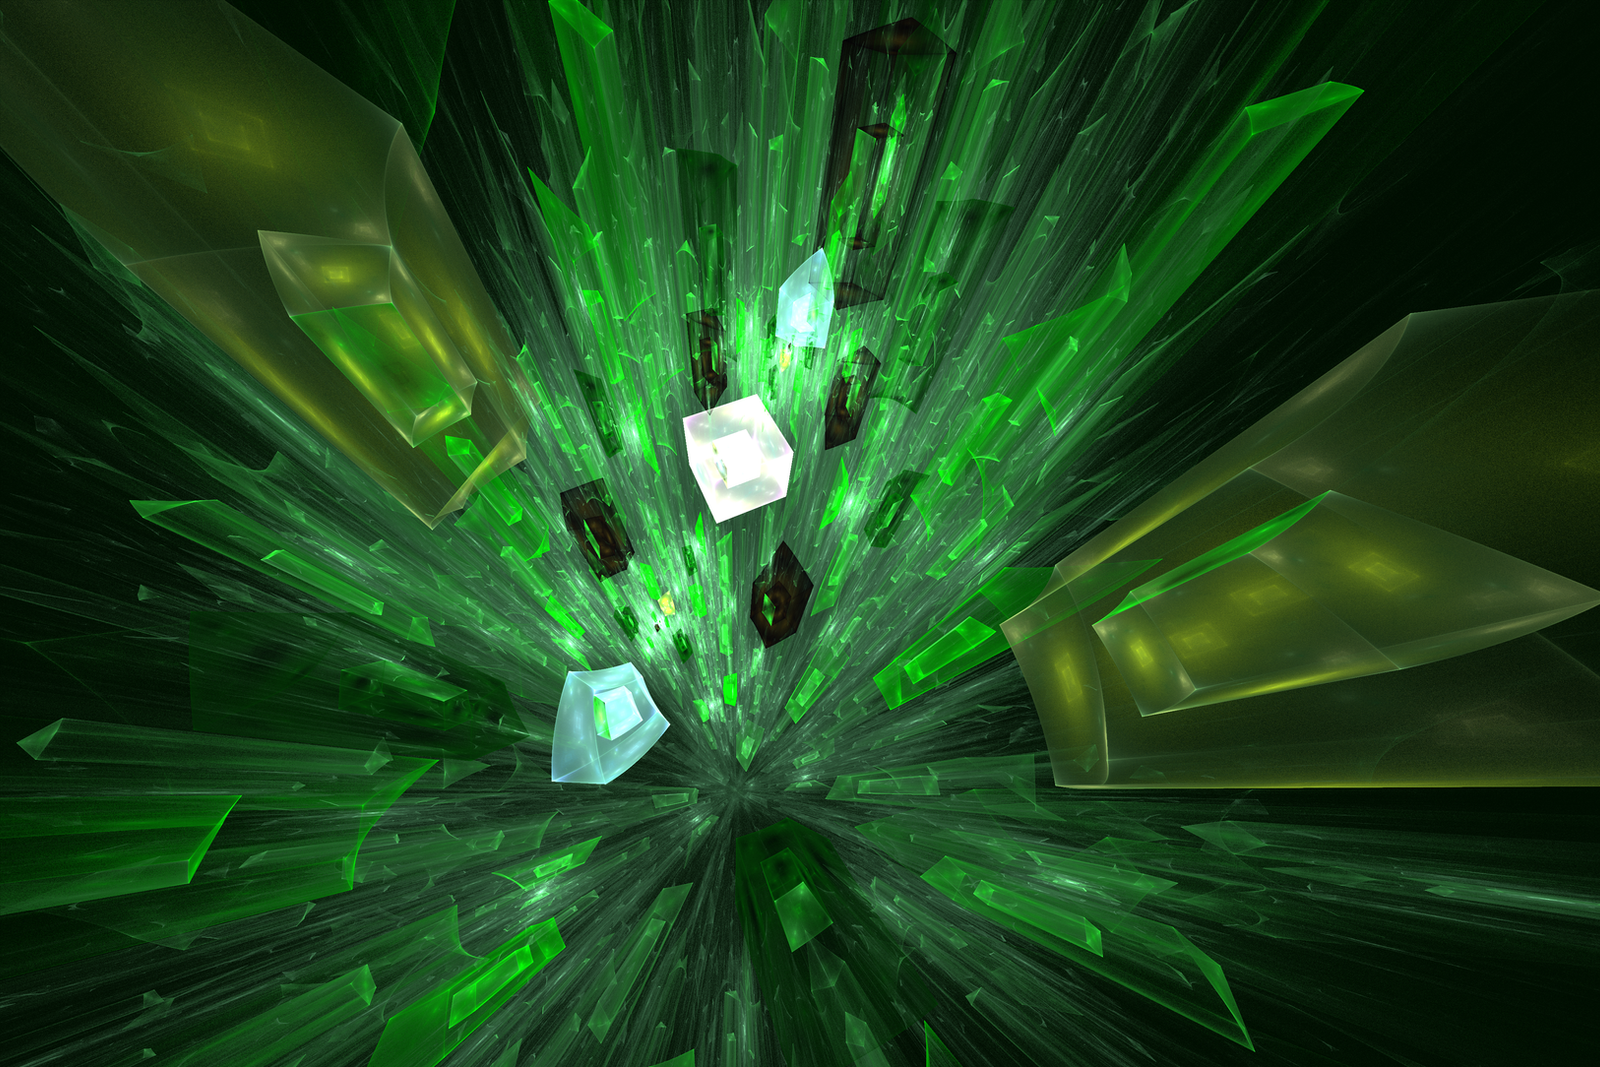 Shattering Green Glass by mps21877